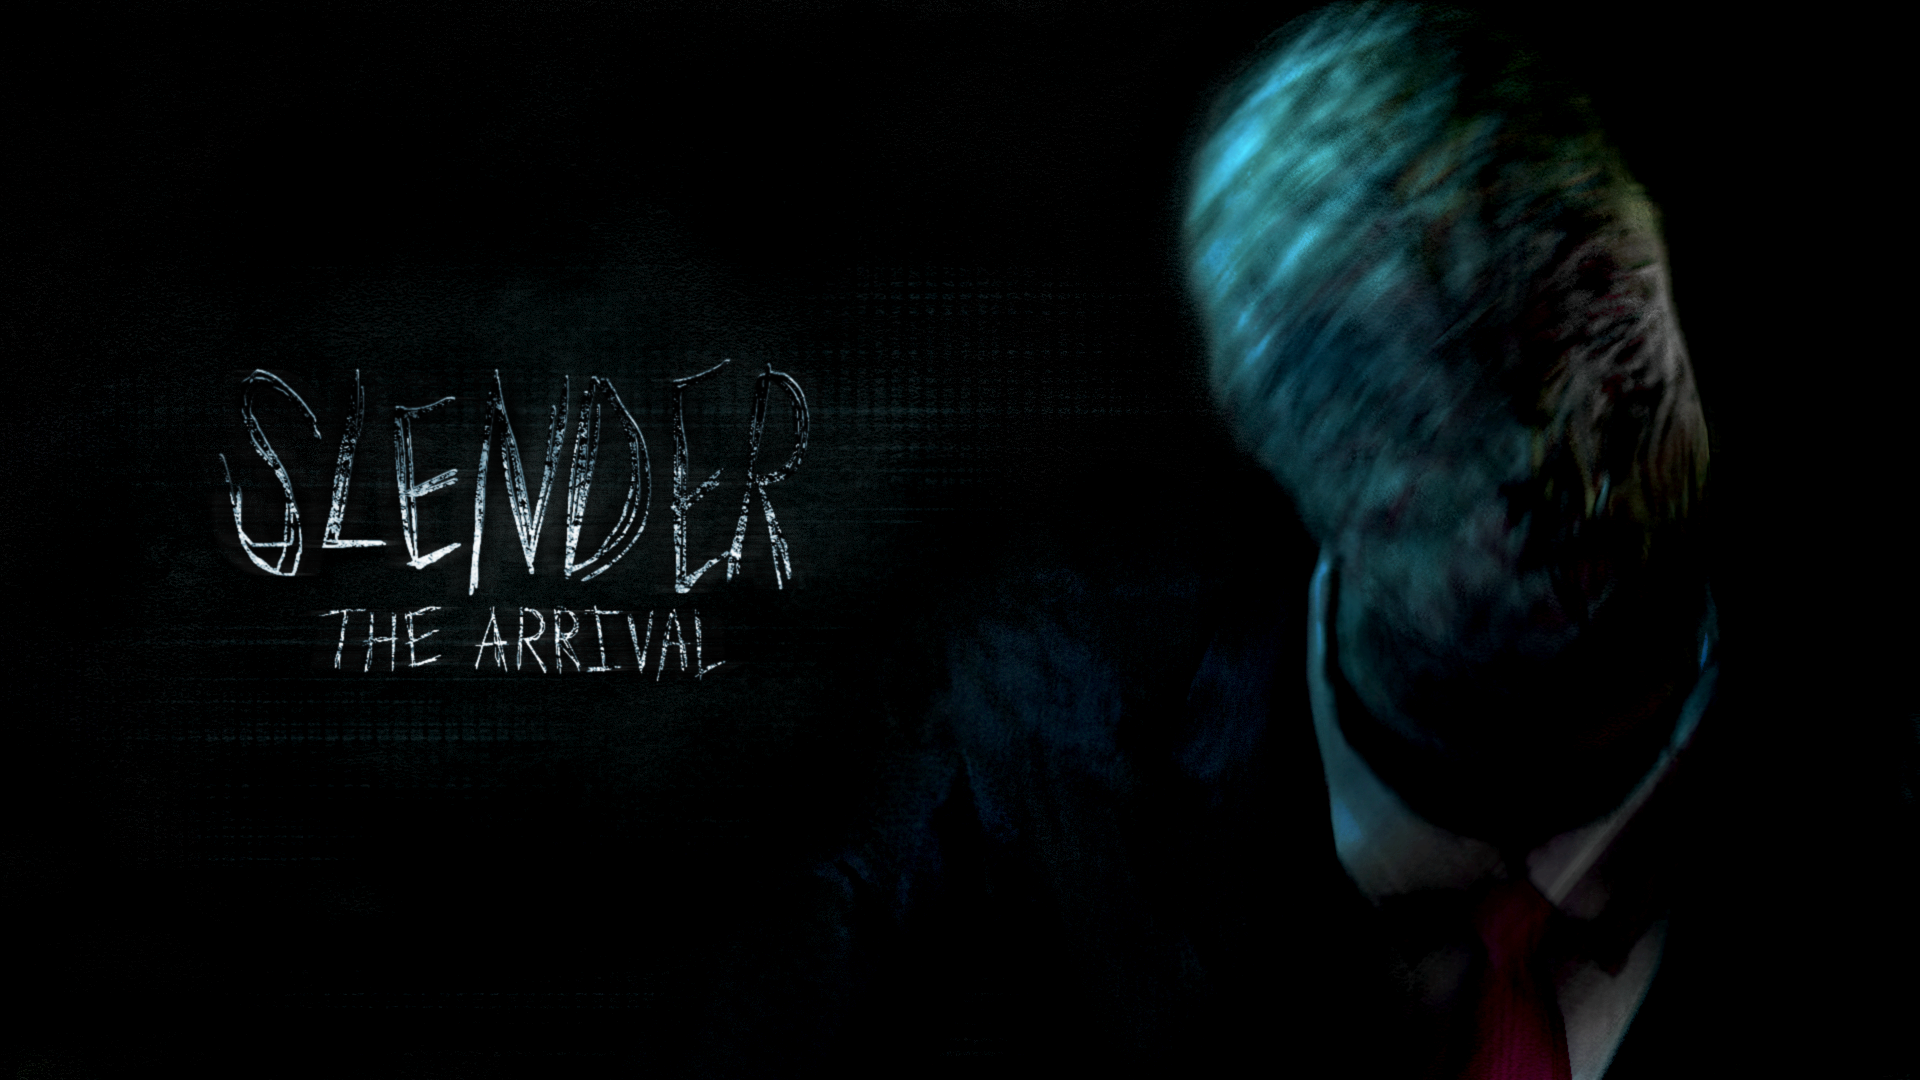 Slender The Arrival Wallpaper